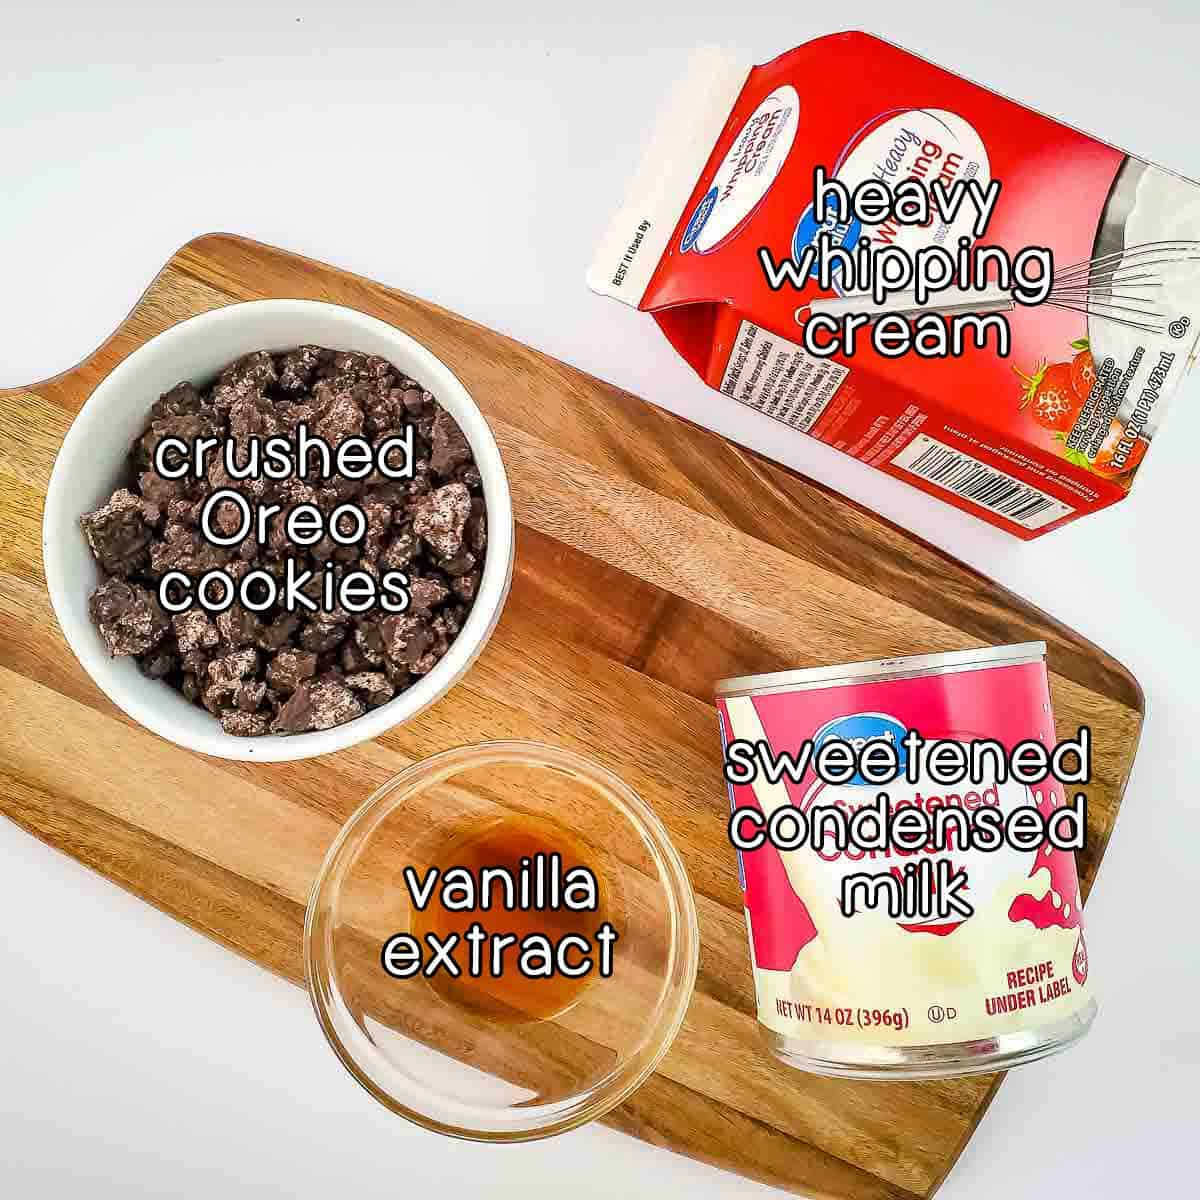 Overhead shot of ingredients- crushed Oreo cookies, heavy whipping cream, sweetened condensed milk, and vanilla extract on a wooden cutting board.